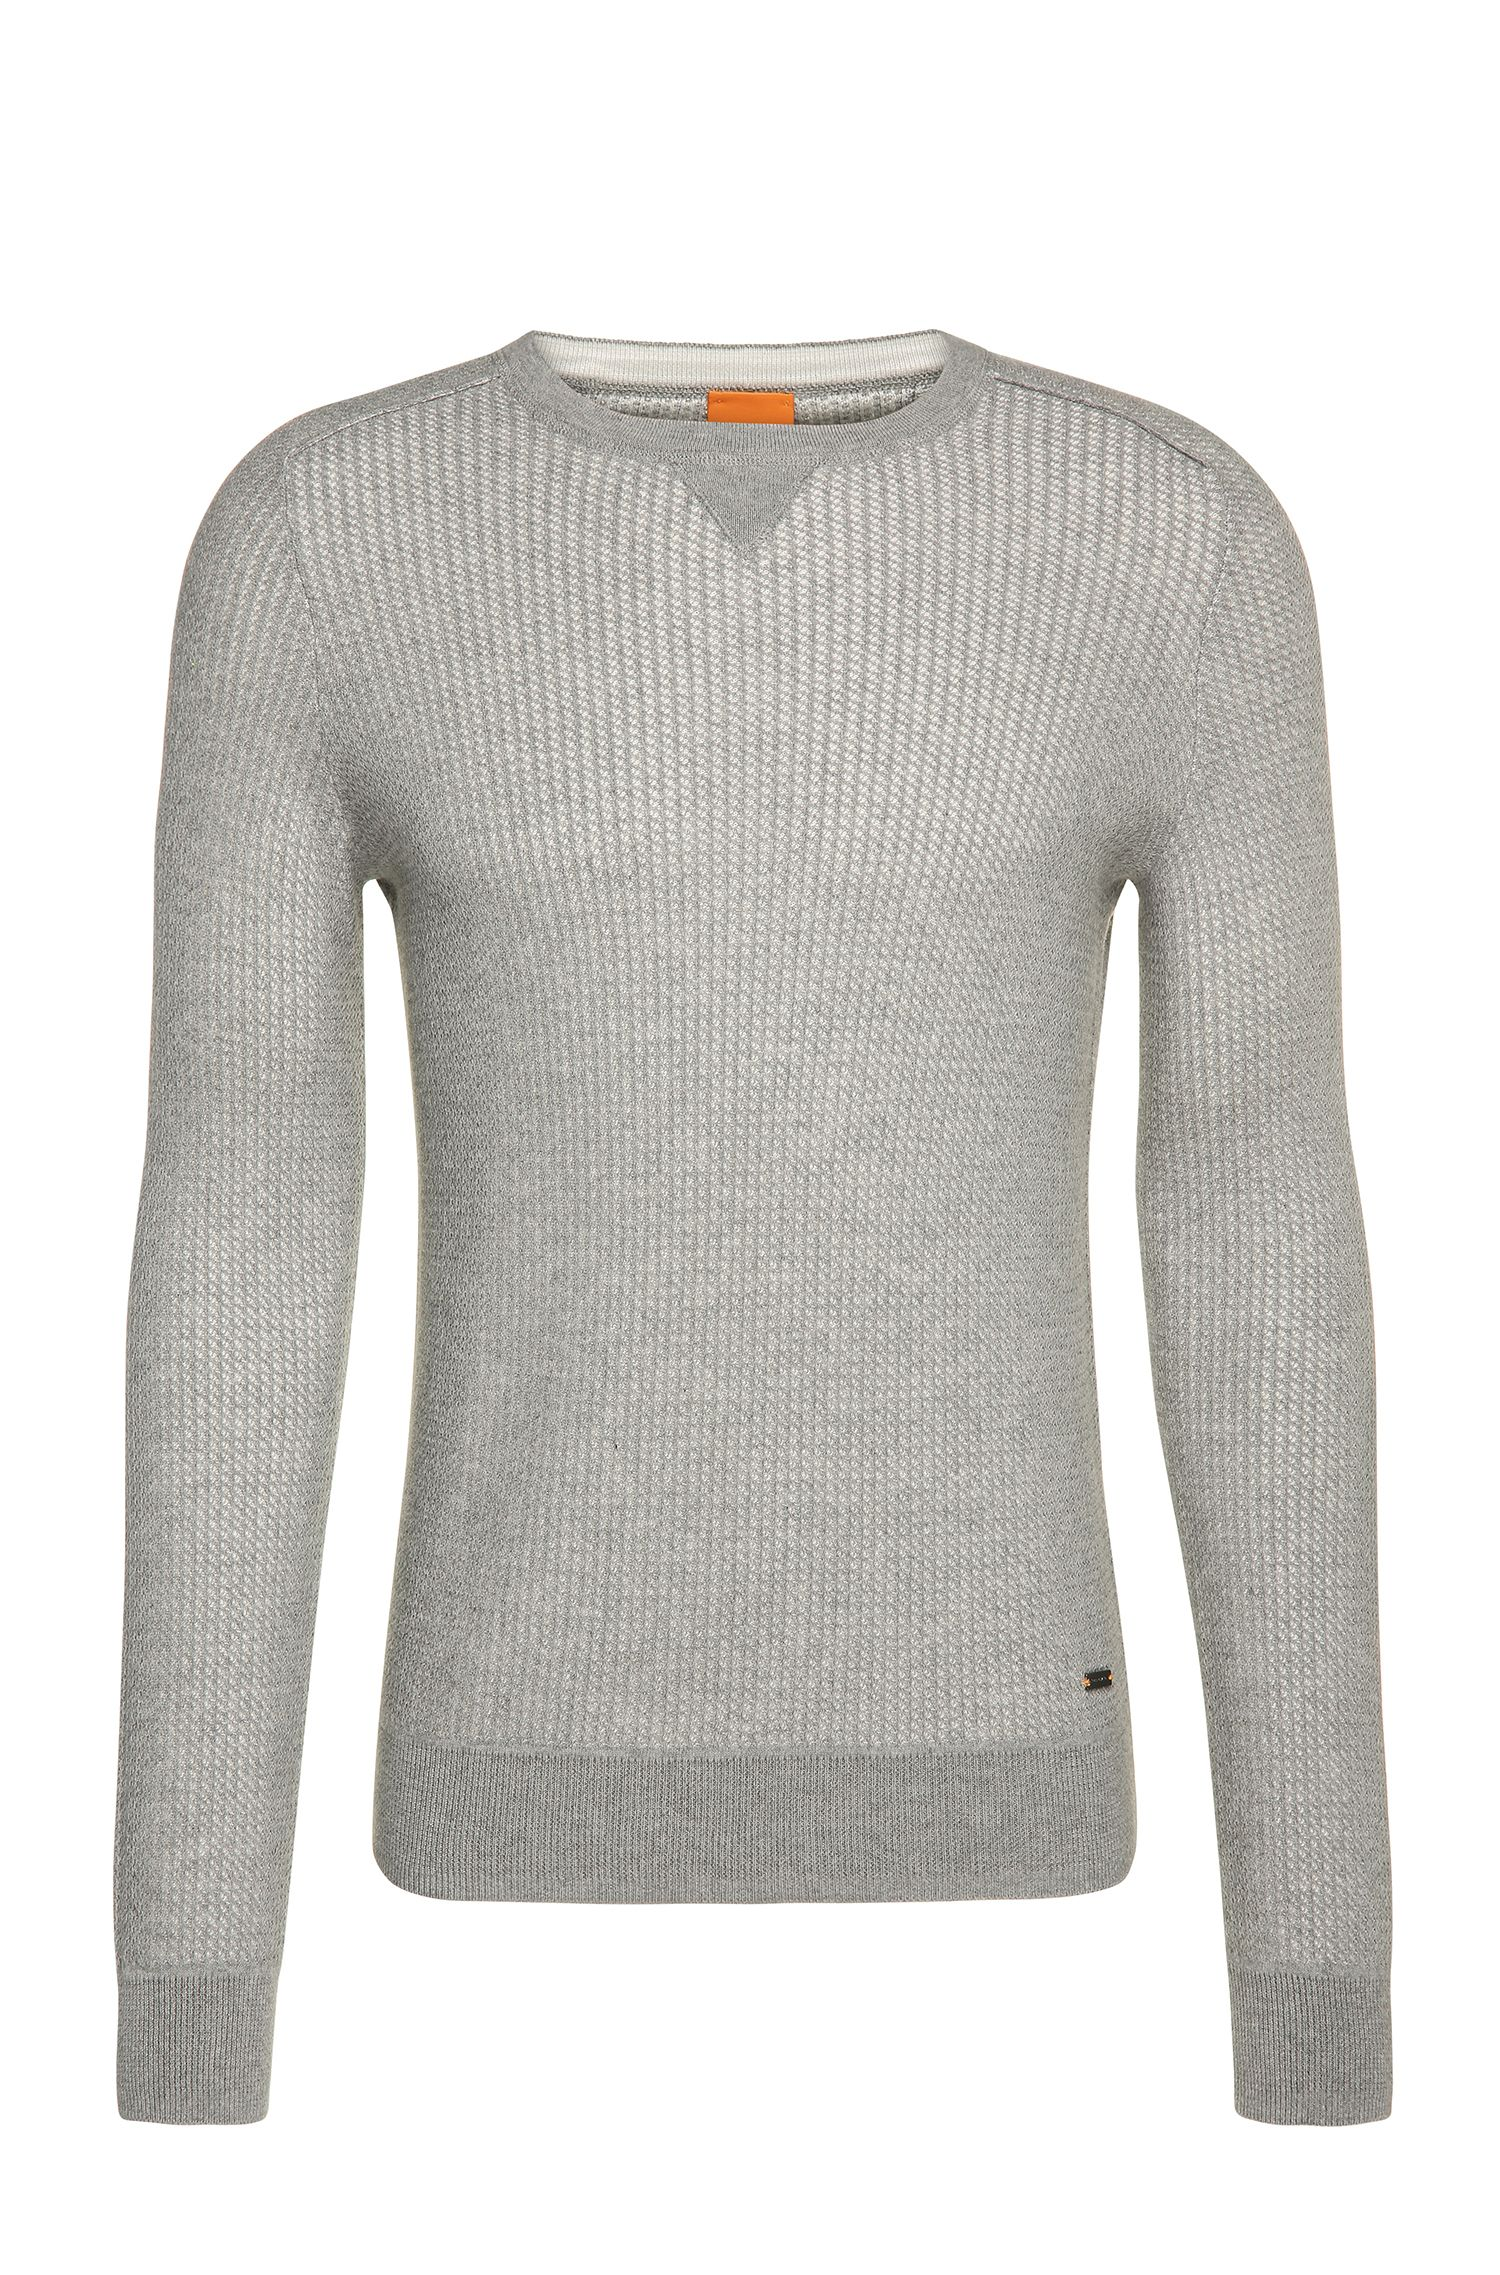 Knitwear sweater in cotton: 'Kawanan'